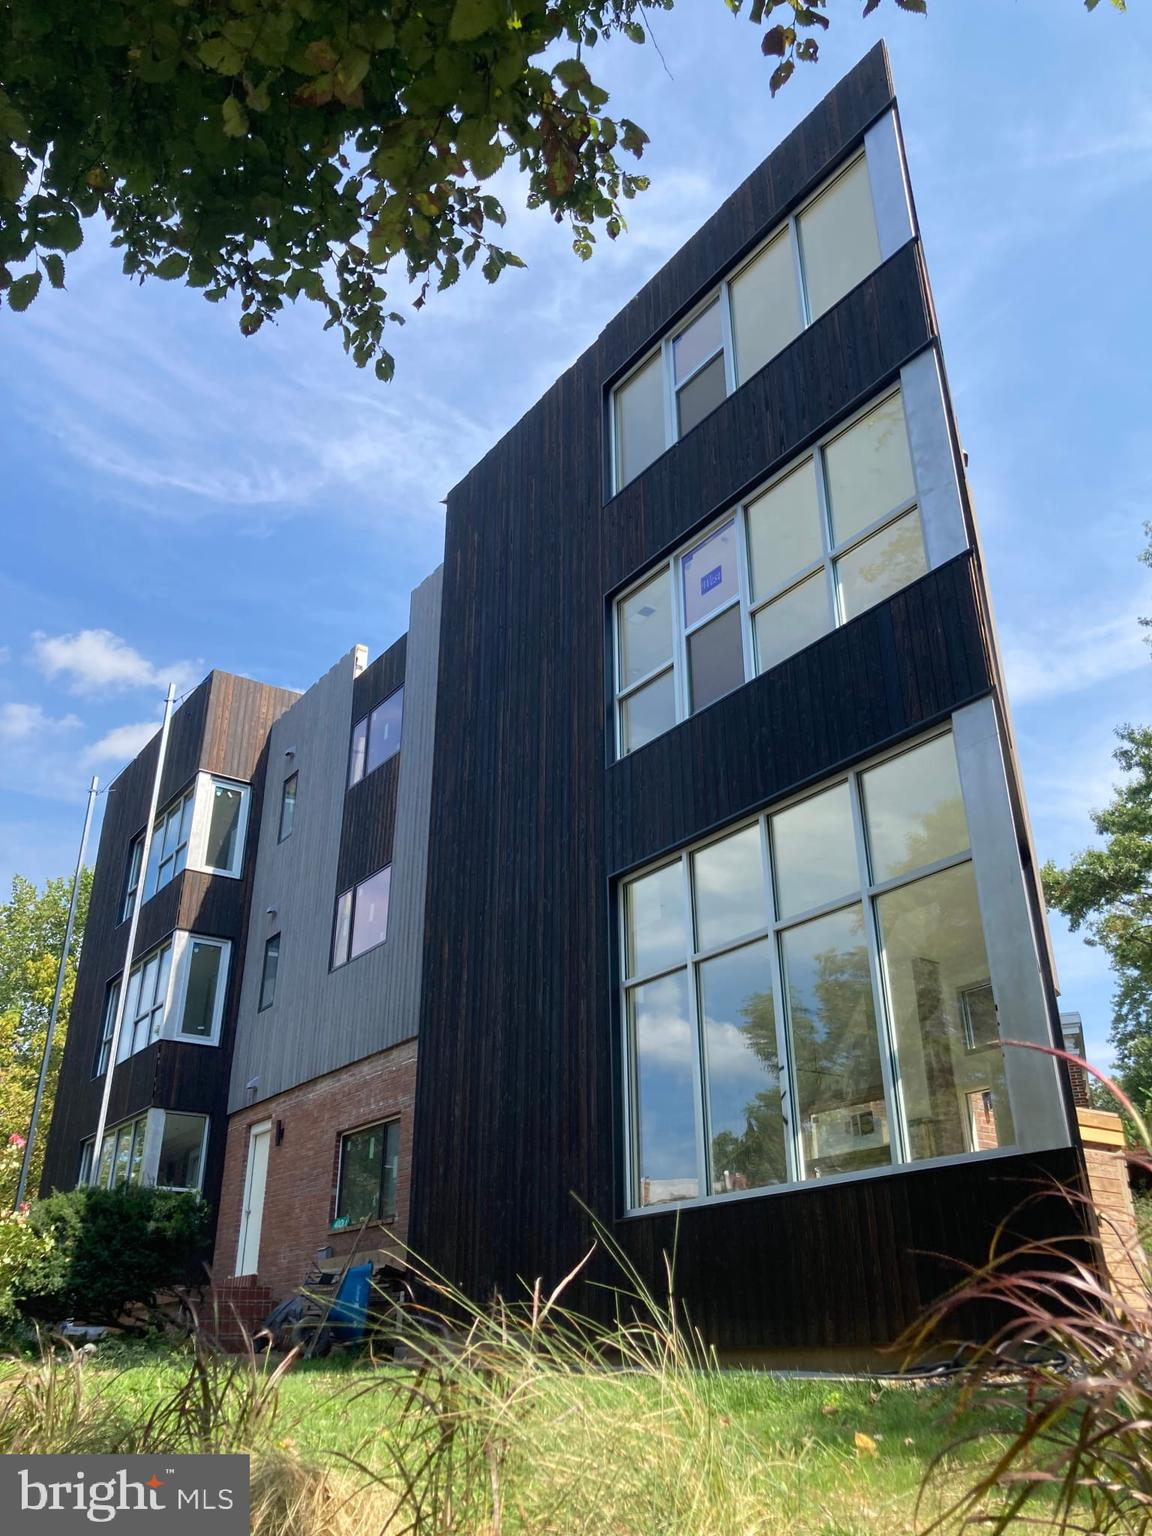 Unique brand new modern home overlooking Rock Creek Park on a quiet beautiful block next to 16th St, North of Columbia Heights, East of Petworth. Light filled 3-level corner, state of the art design, one of two side by side condos, architect/developer lives next door. Open floor plan, natural materials: concrete and hardwood floors, steel spiral stair and railings, oversized aluminum windows, porcelain tiles, quartz countertops, burnt wood siding, LED lighting. A must see for modern architecture lovers. Finishing final details.